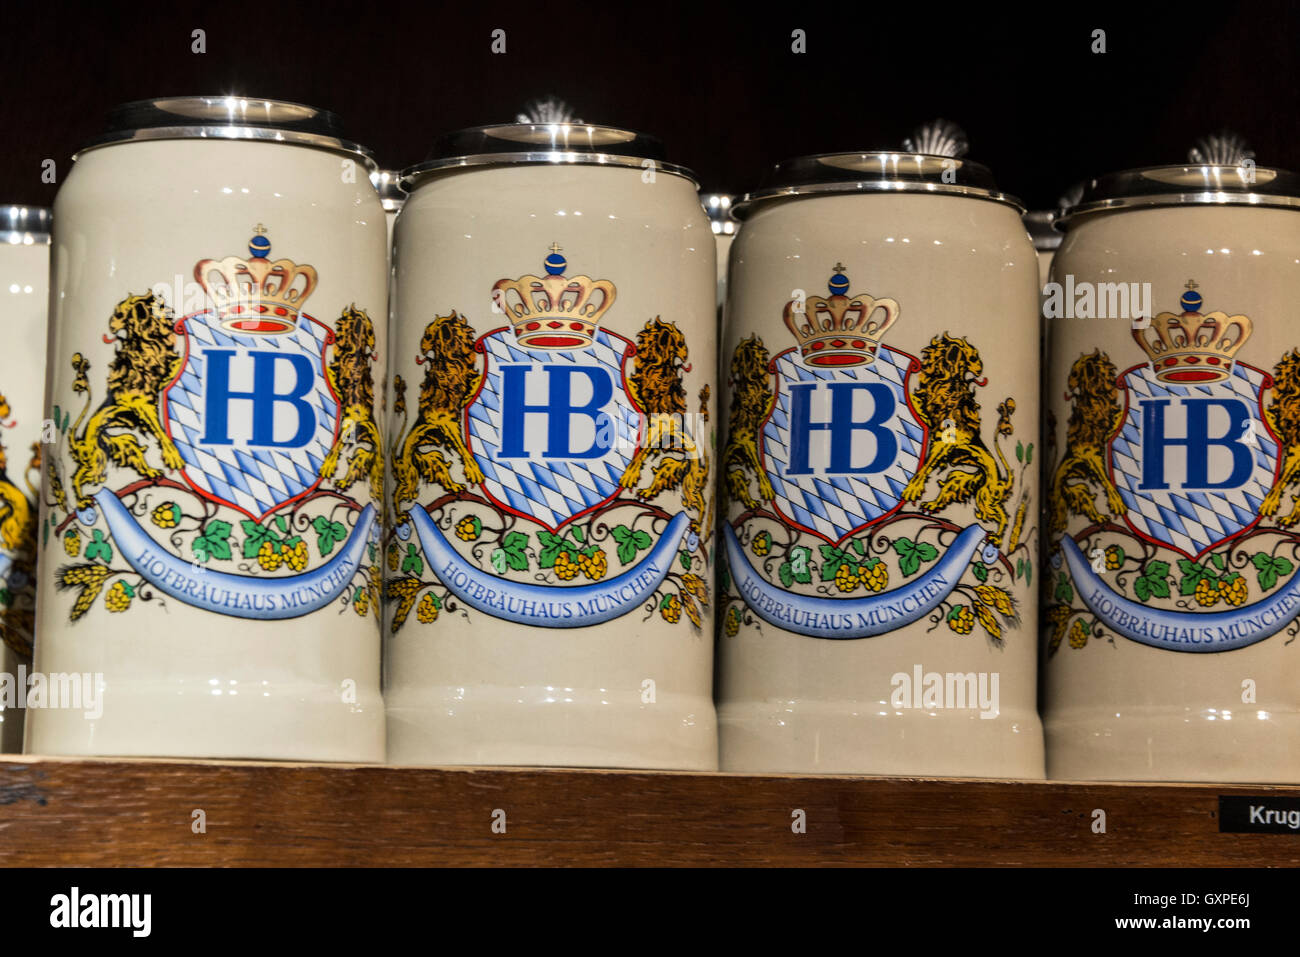 A row of 1 Liter Mass jugs on sale at the Hofbräuhaus beer hall gift